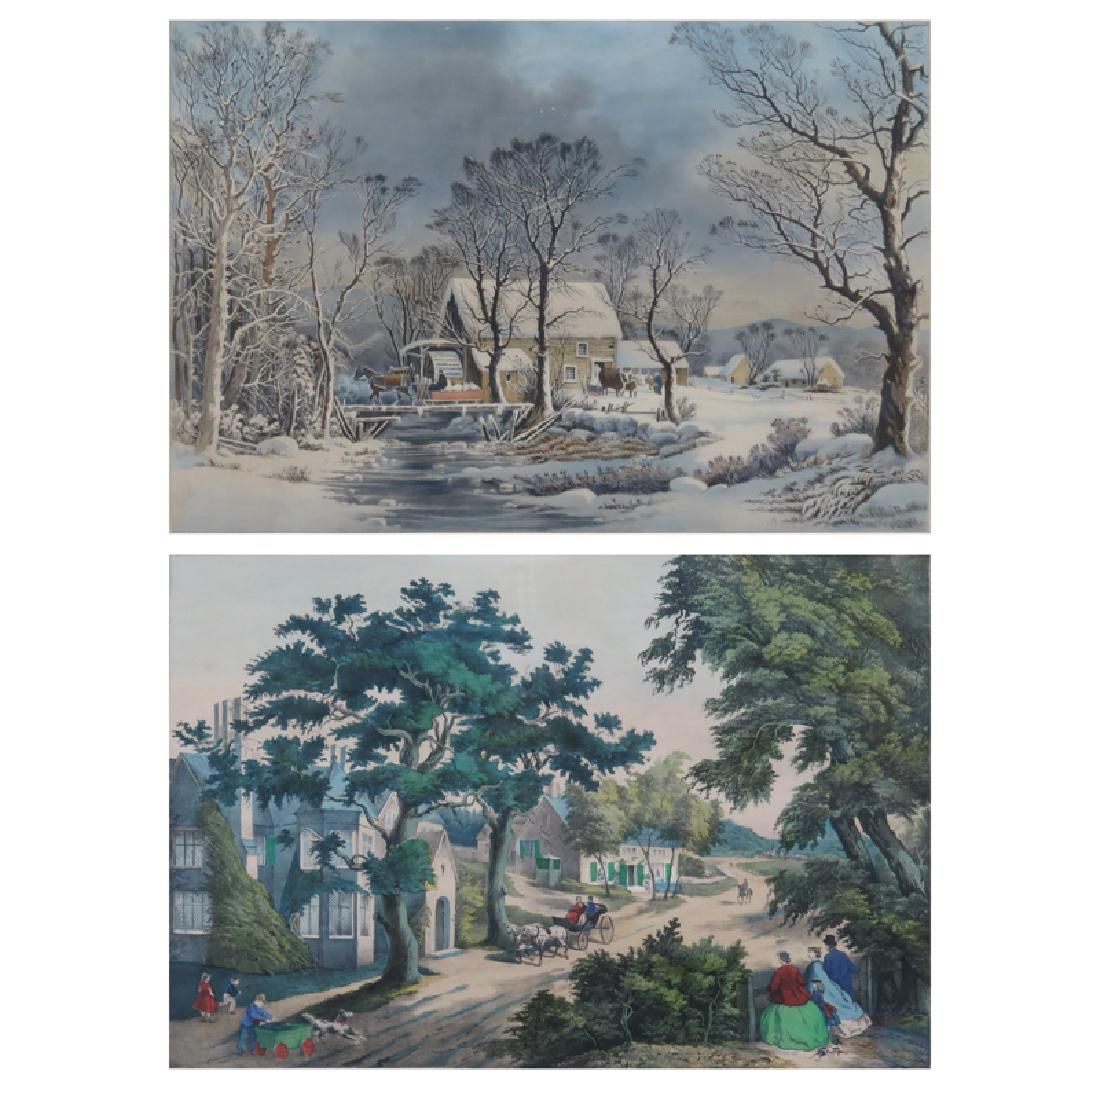 Two 19th C Hand-colored Lithographs. A Currier & Ives